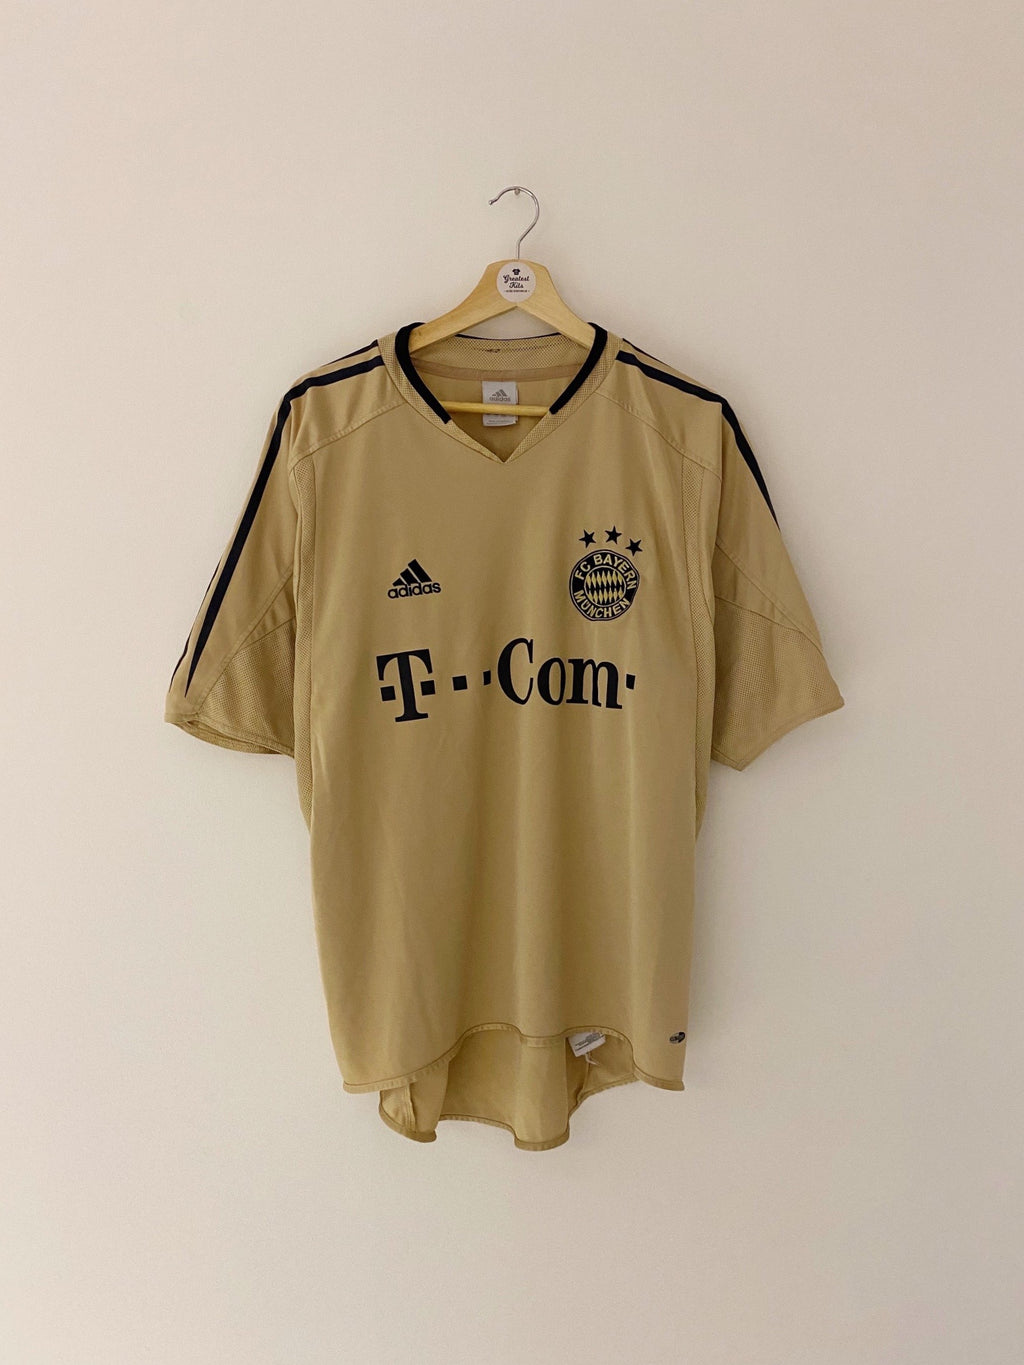 2004/05 Bayern Munich Away Shirt (L) 9/10